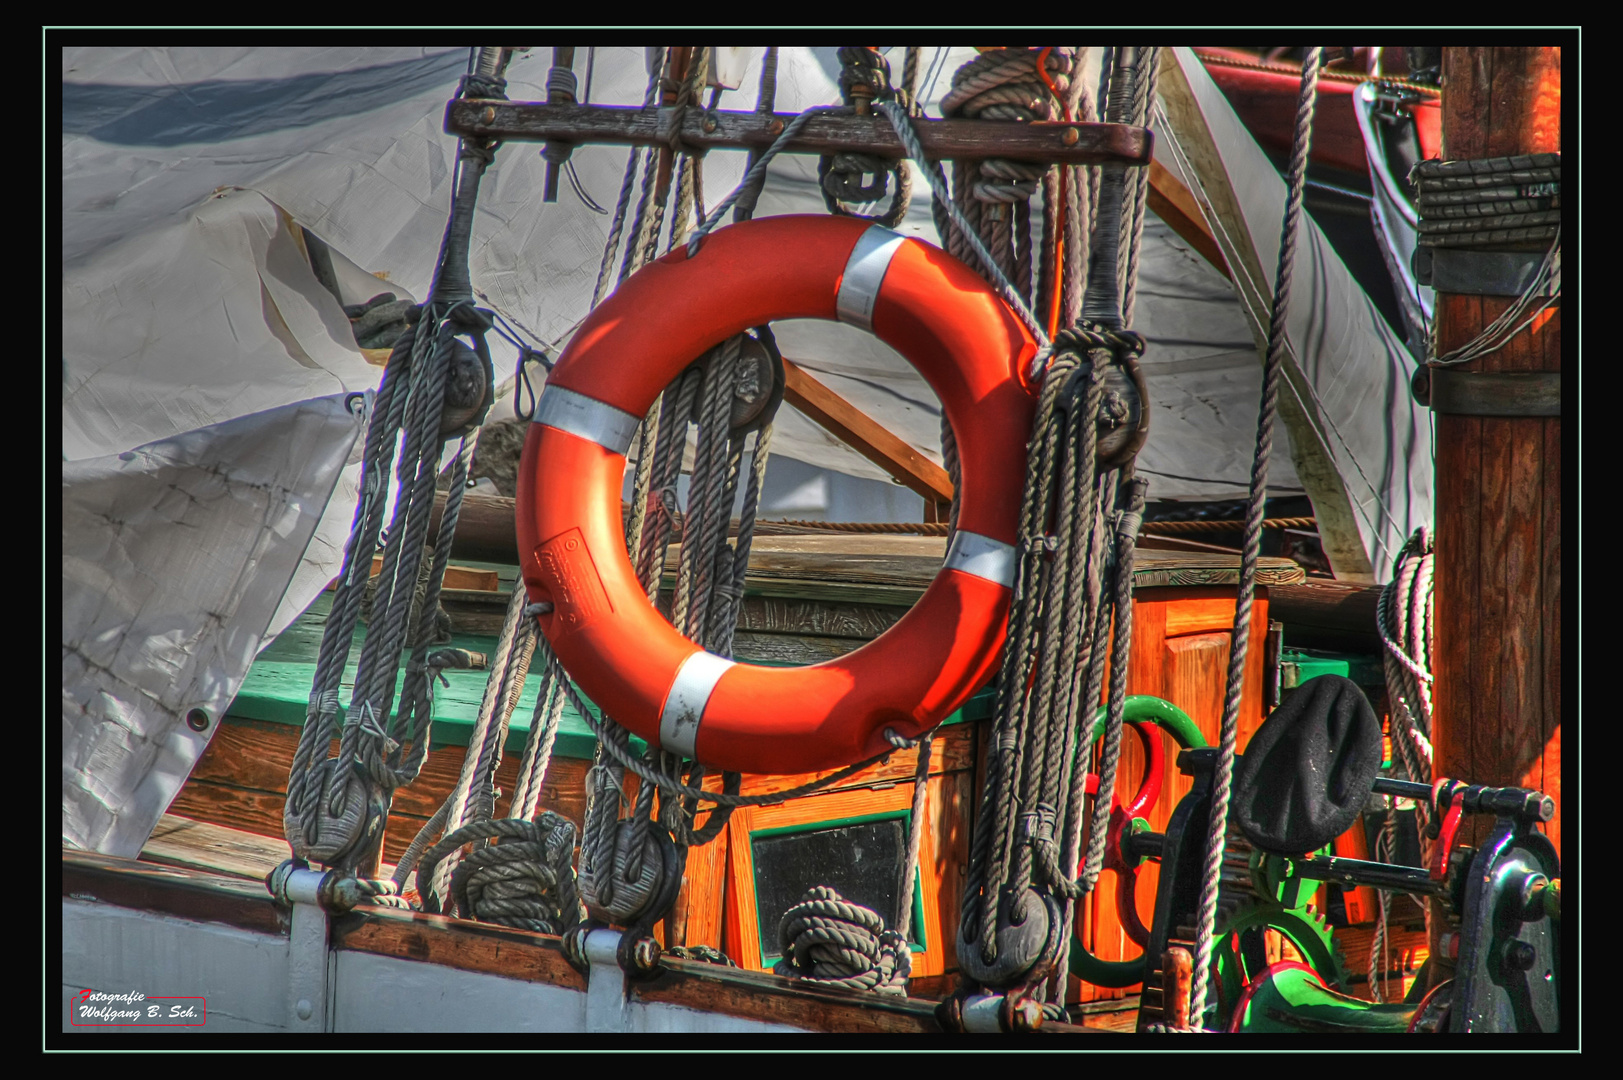 Maritime opinions from Bremerhaven